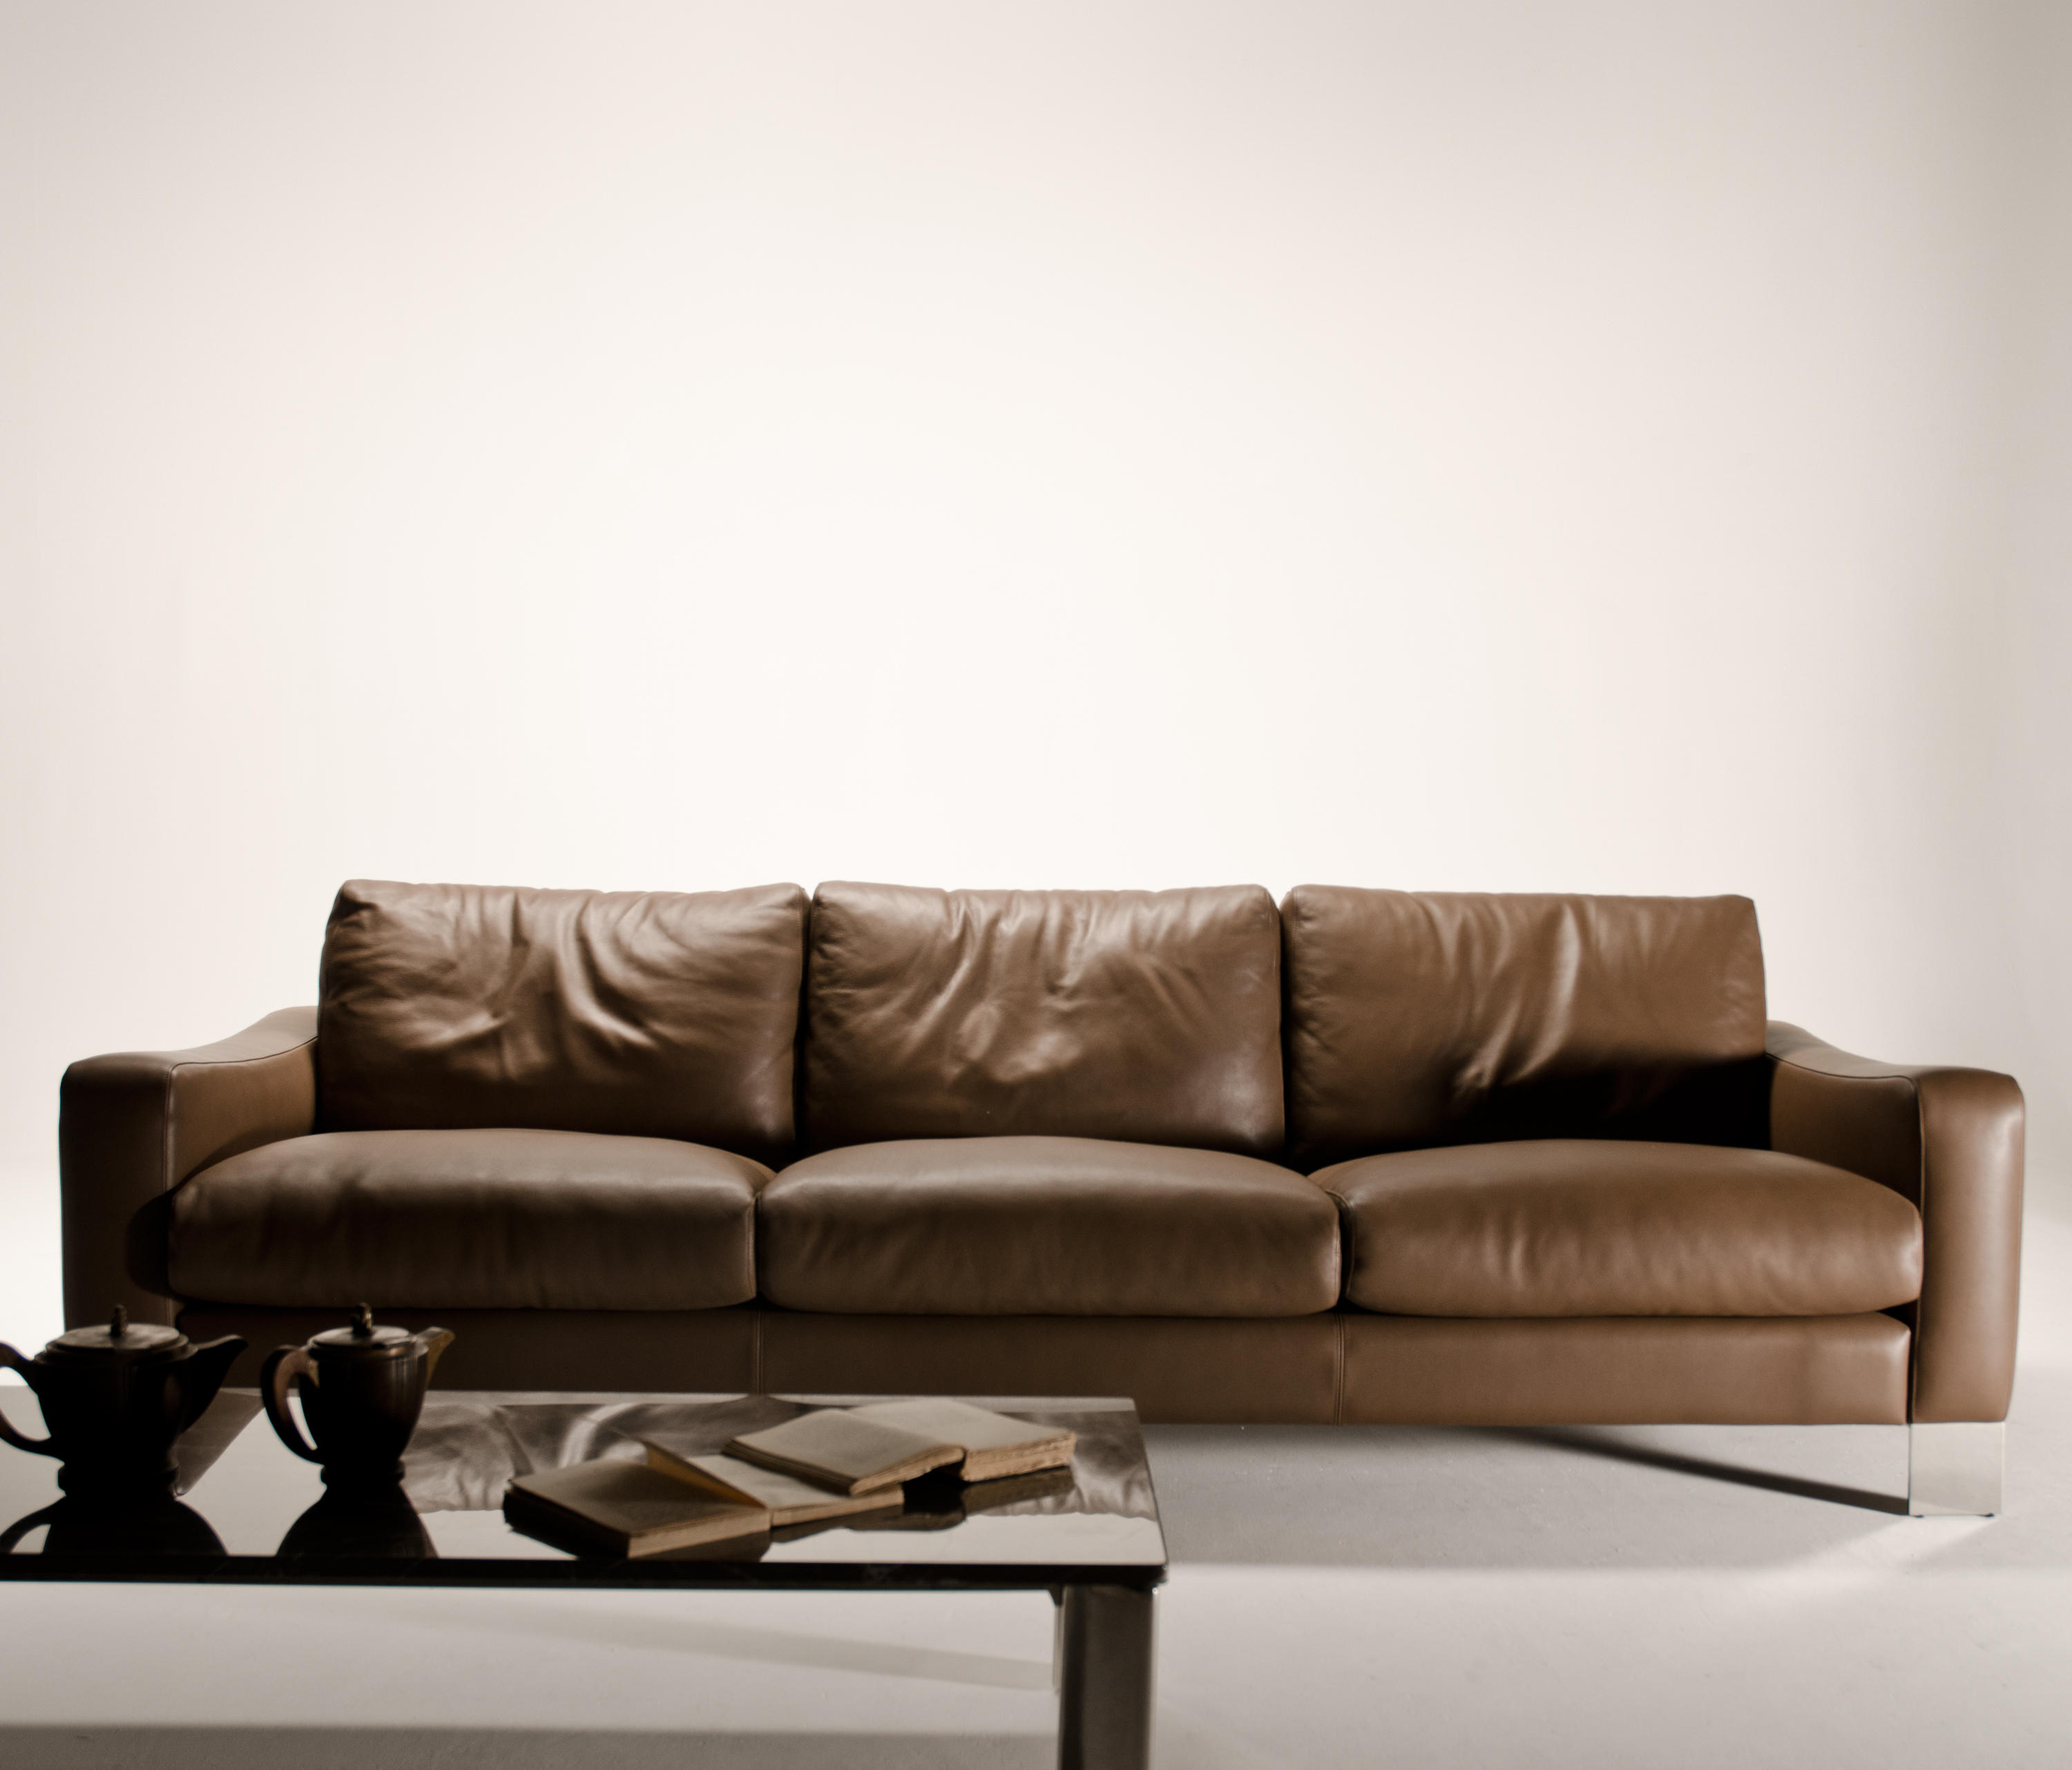 DOLCEMARO SOFA LEATHER - Sofas from Loop & Co | Architonic